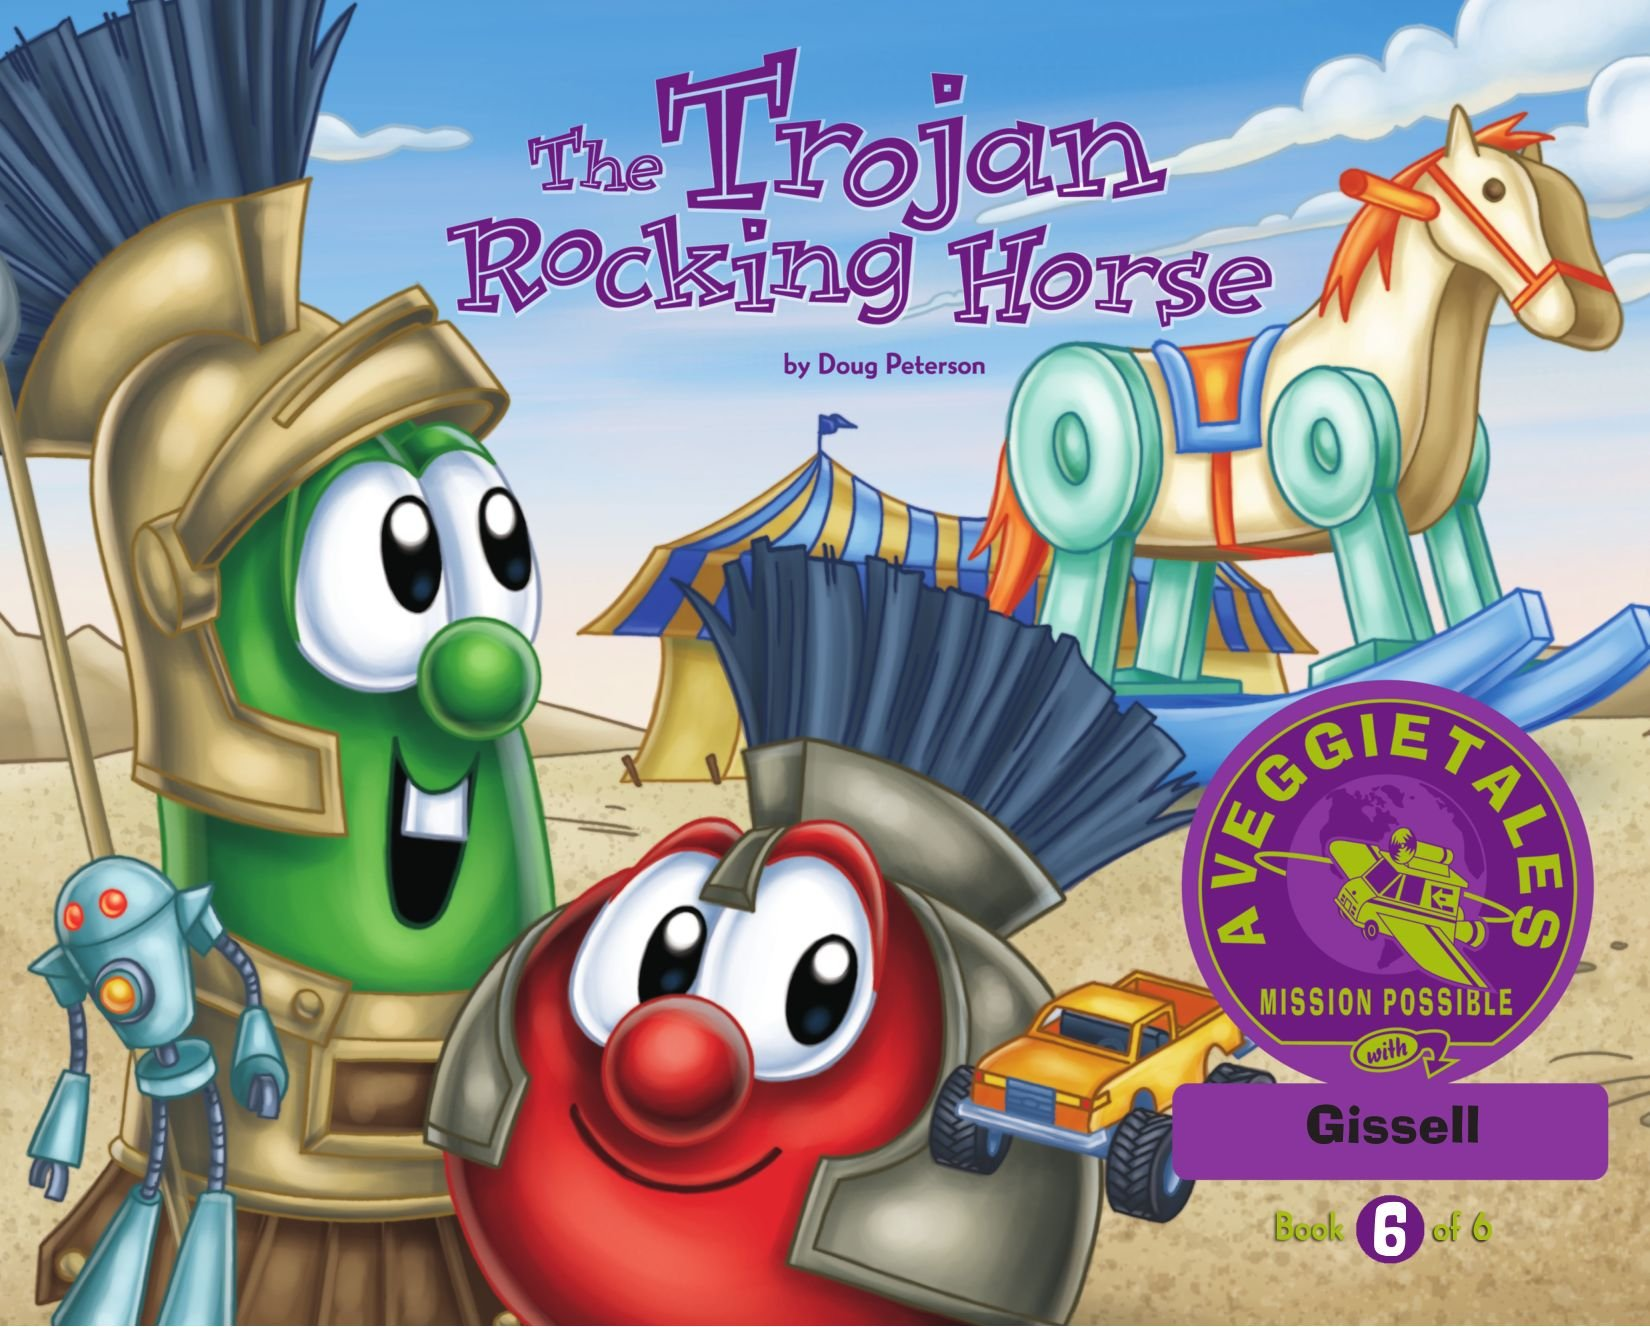 The Trojan Rocking Horse - VeggieTales Mission Possible Adventure Series #6: Personalized for Gissell (Girl) pdf